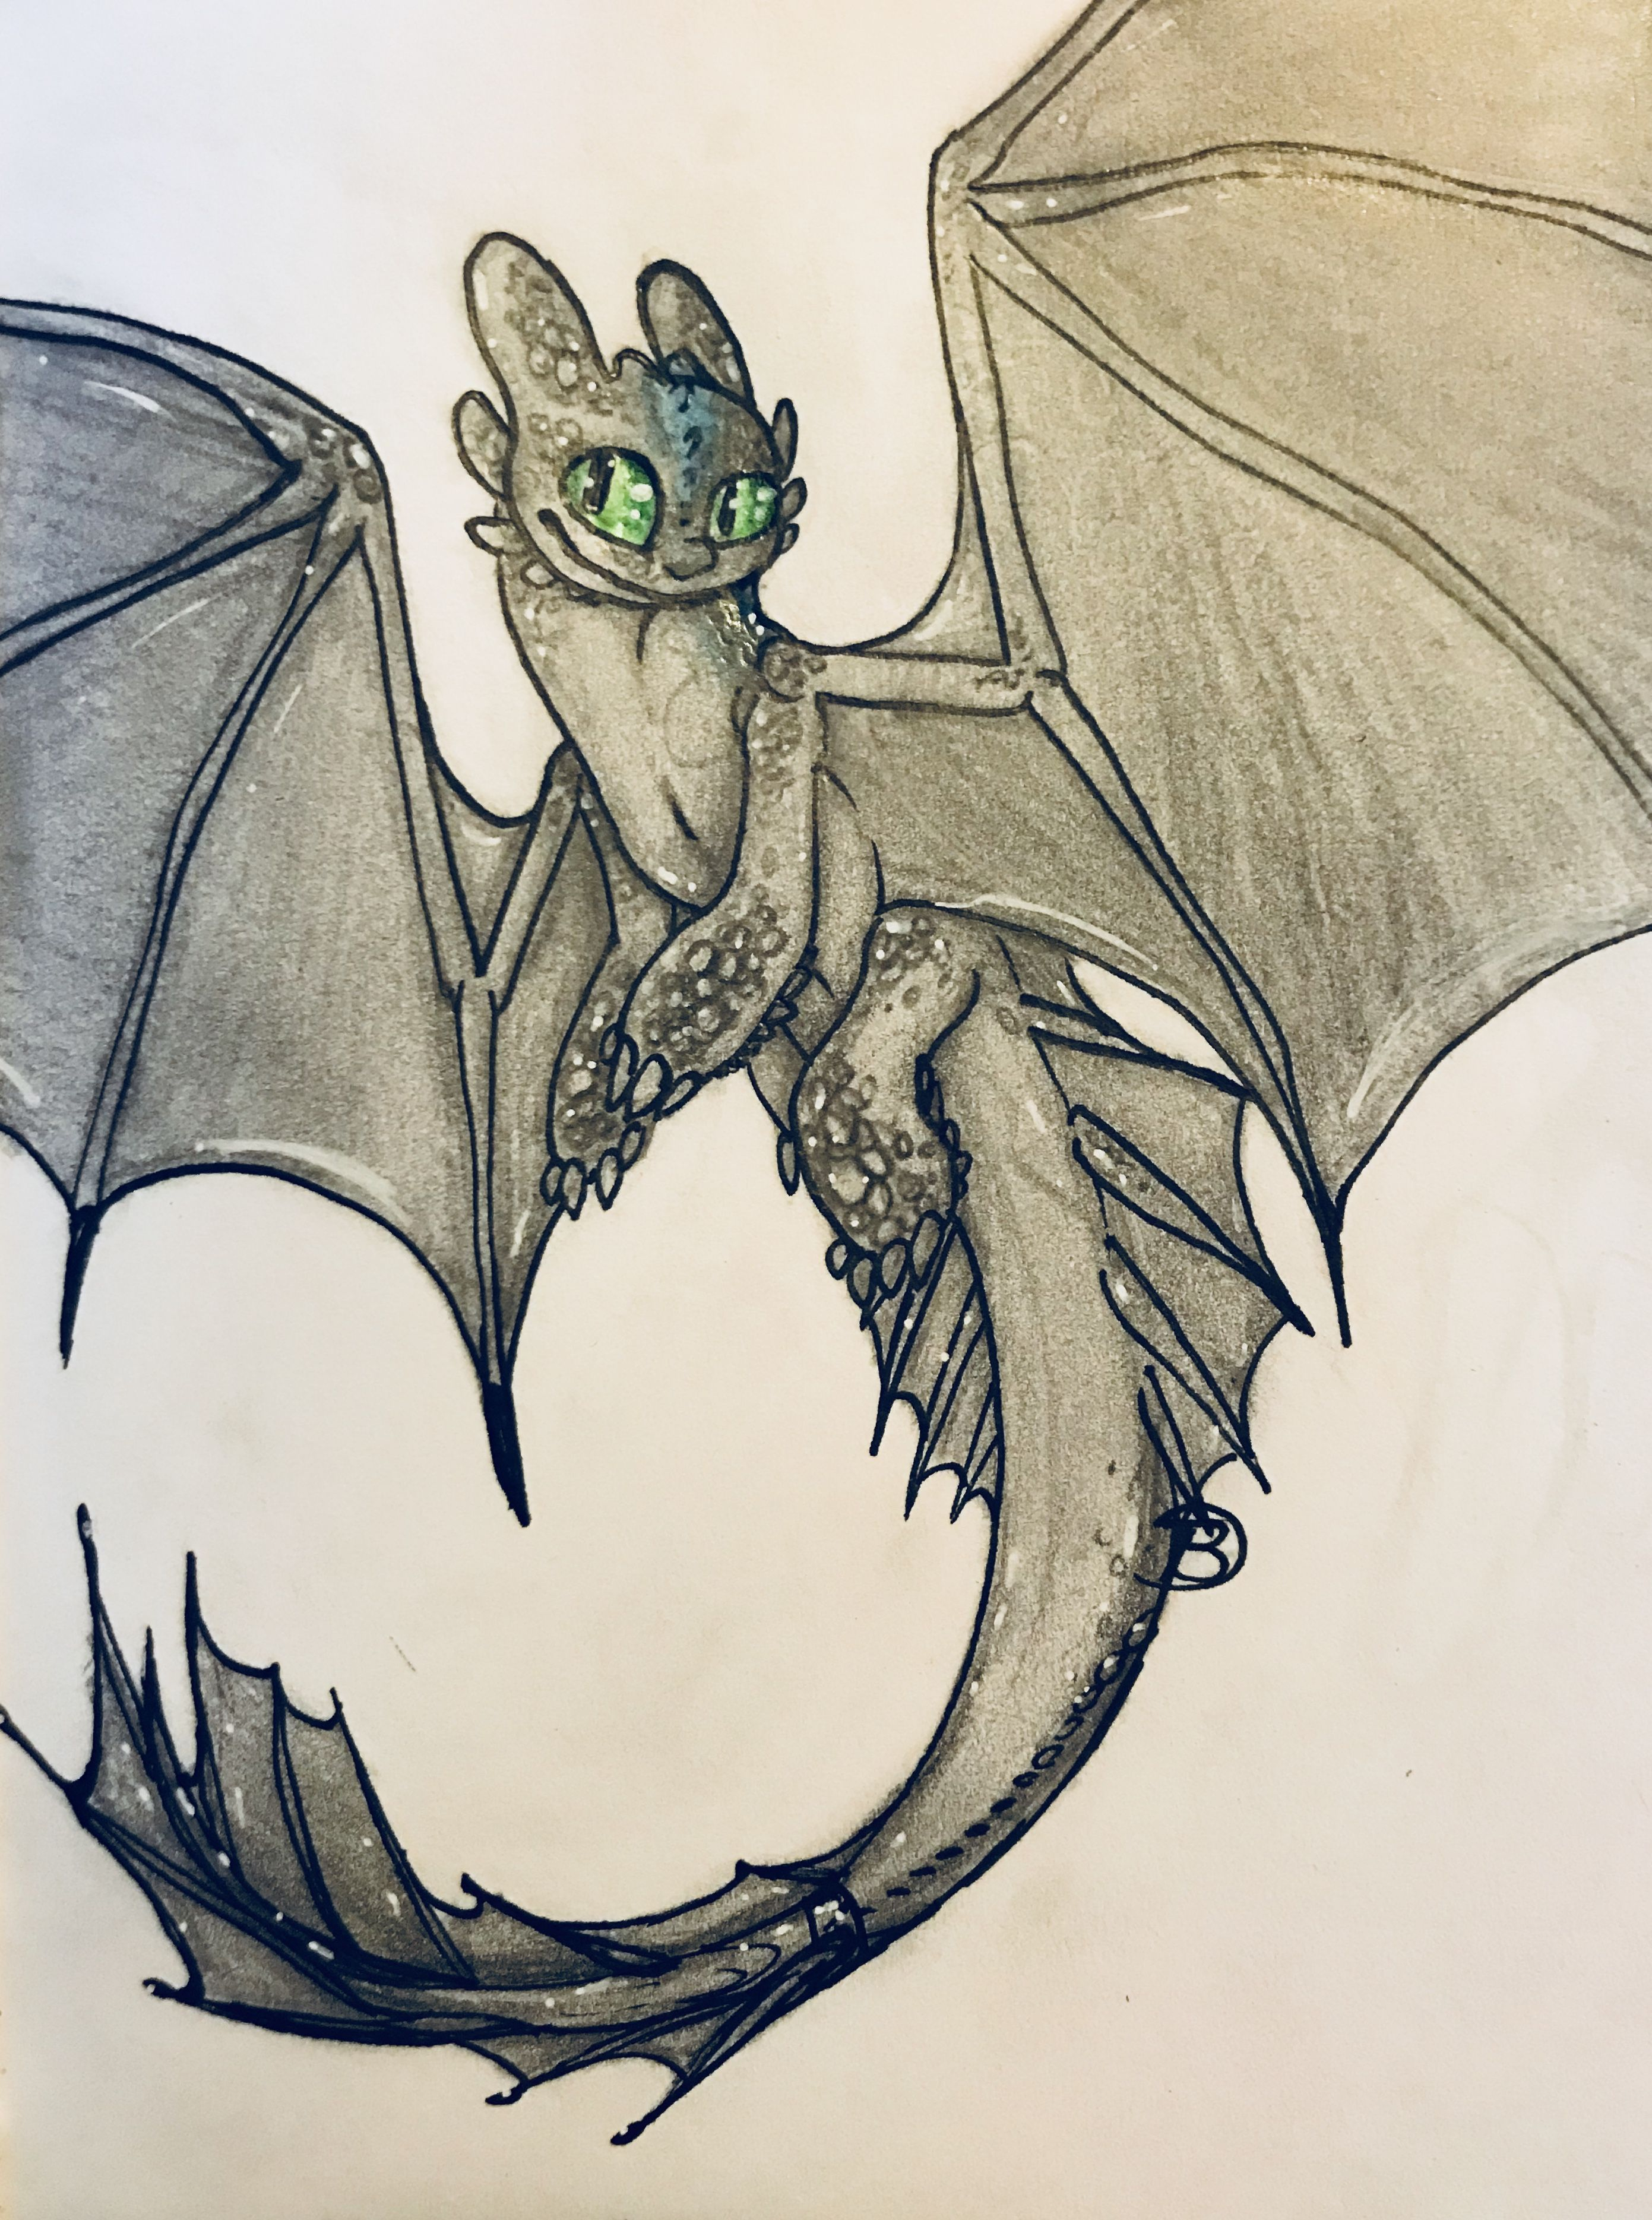 Someone requested that I did a full body toothless, i